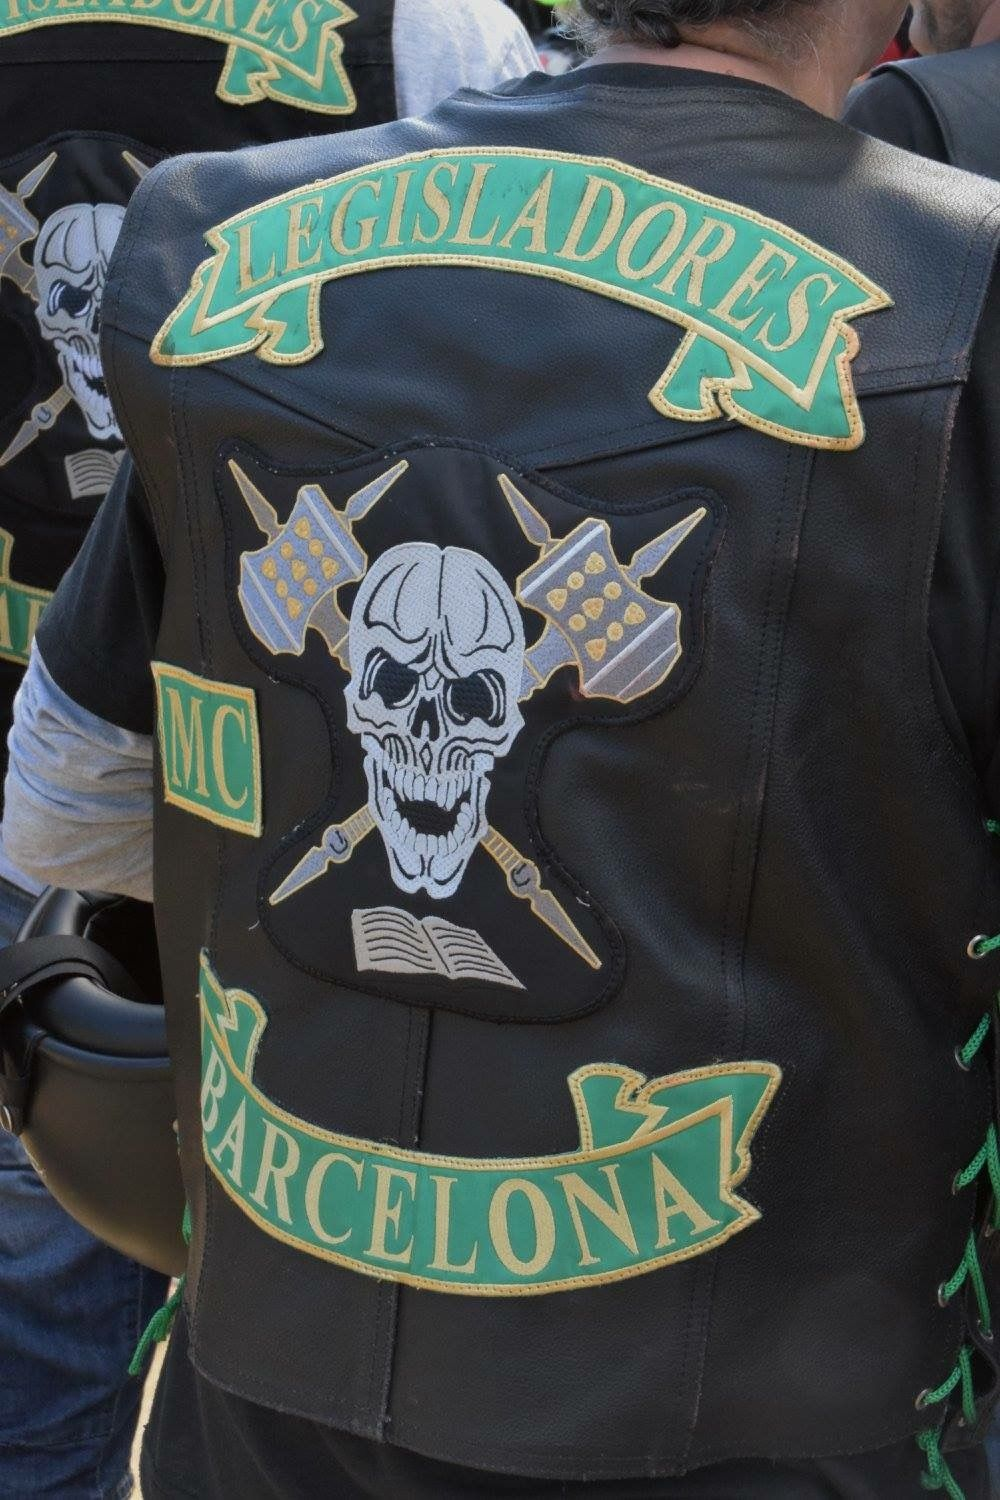 Legisladores Mc Barcelona More Bike Gang 7d32905a11e